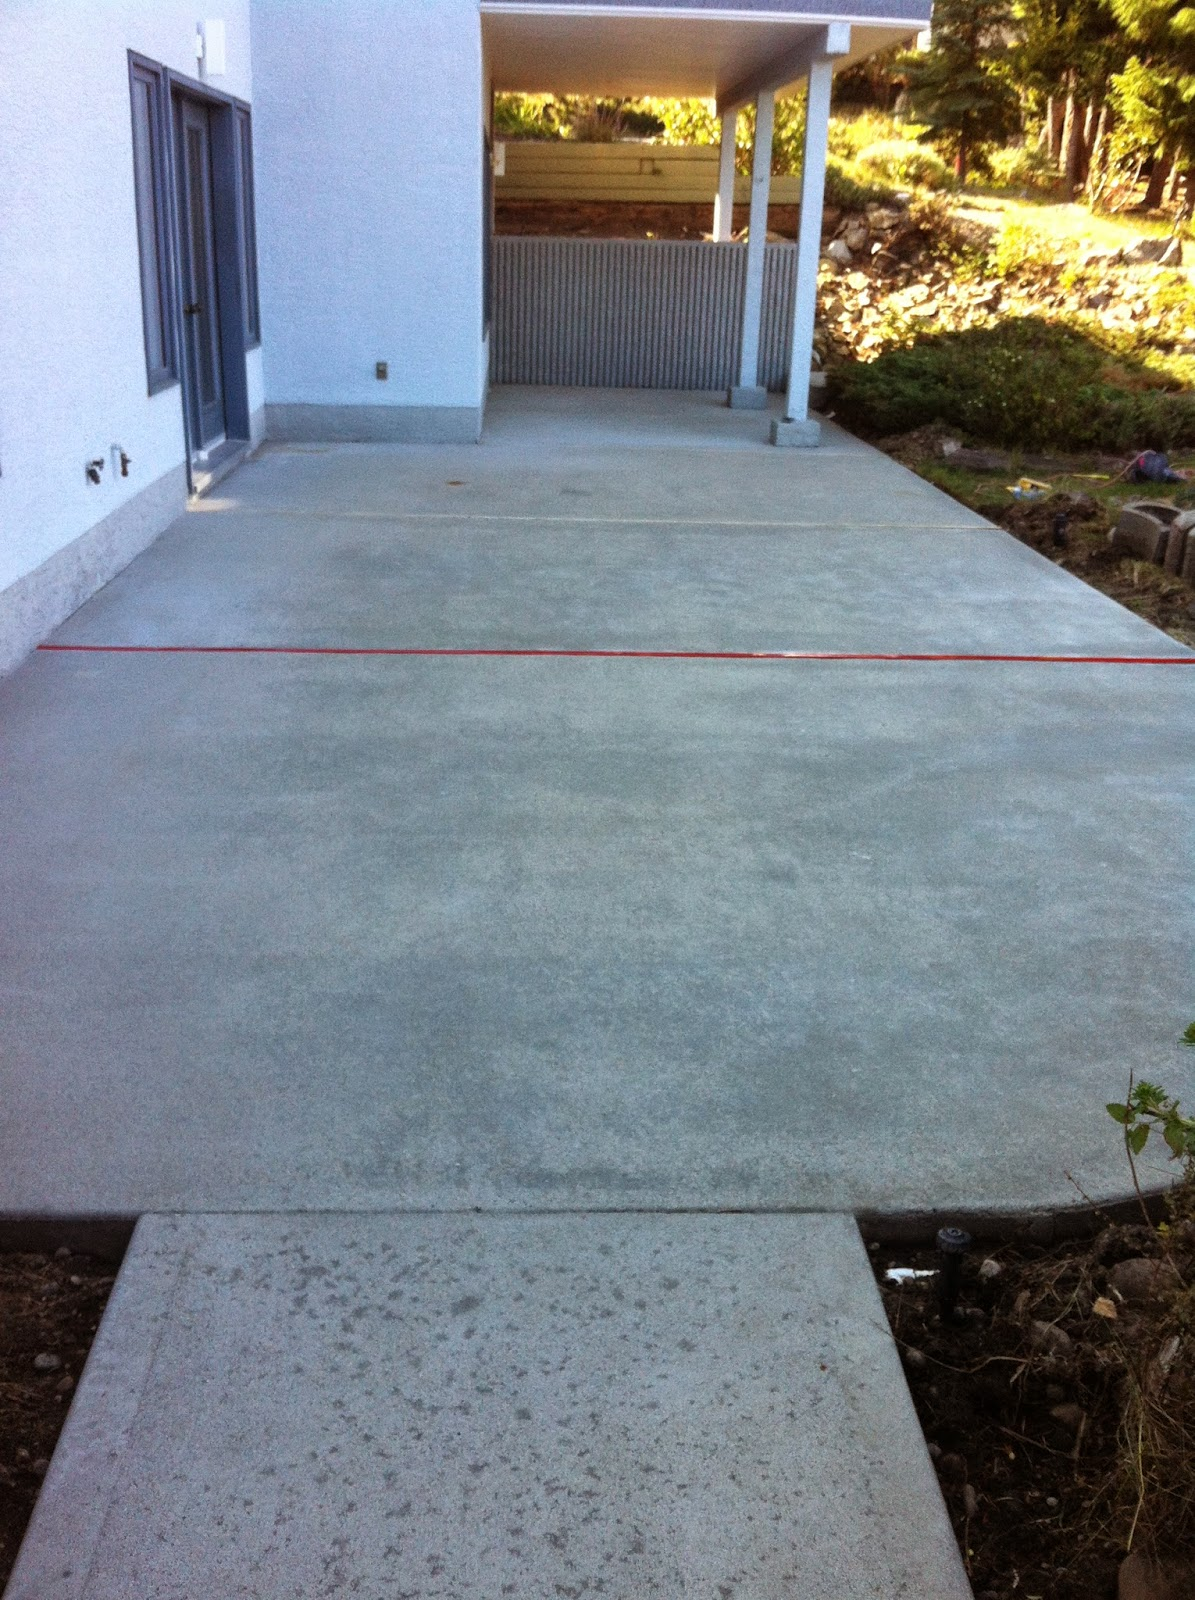 MODE CONCRETE: Give New Life to your Concrete with Acid ...